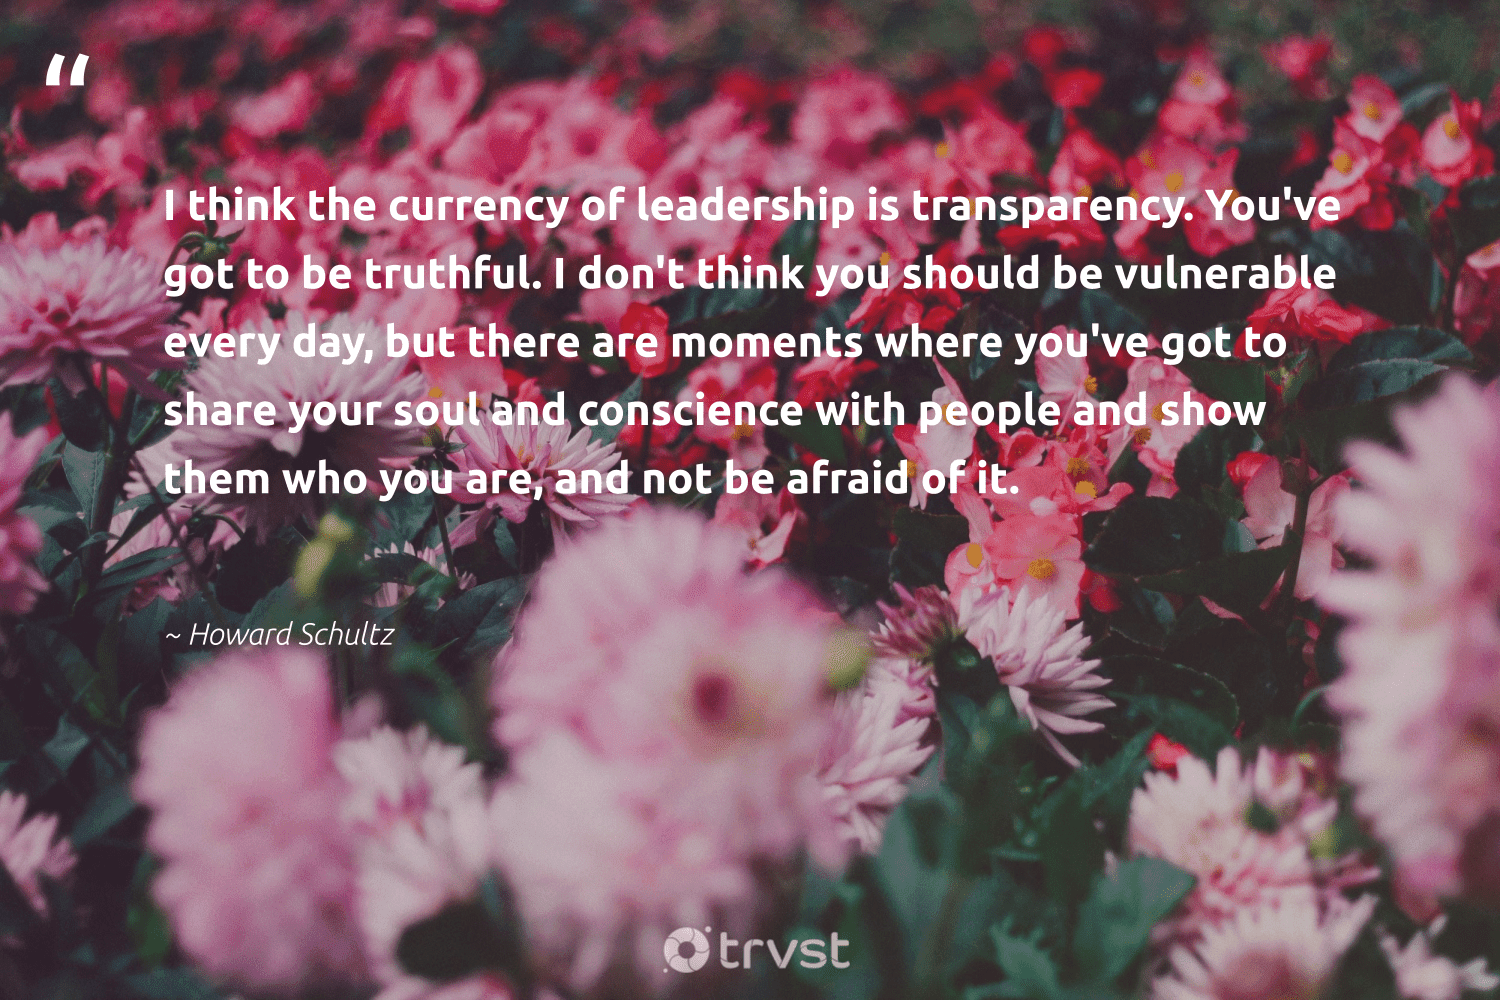 """""""I think the currency of leadership is transparency. You've got to be truthful. I don't think you should be vulnerable every day, but there are moments where you've got to share your soul and conscience with people and show them who you are, and not be afraid of it.""""  - Howard Schultz #trvst #quotes #leadership #leadershipqualities #begreat #nevergiveup #socialchange #leadershipskills #futureofwork #softskills #ecoconscious #leadershipdevelopment"""